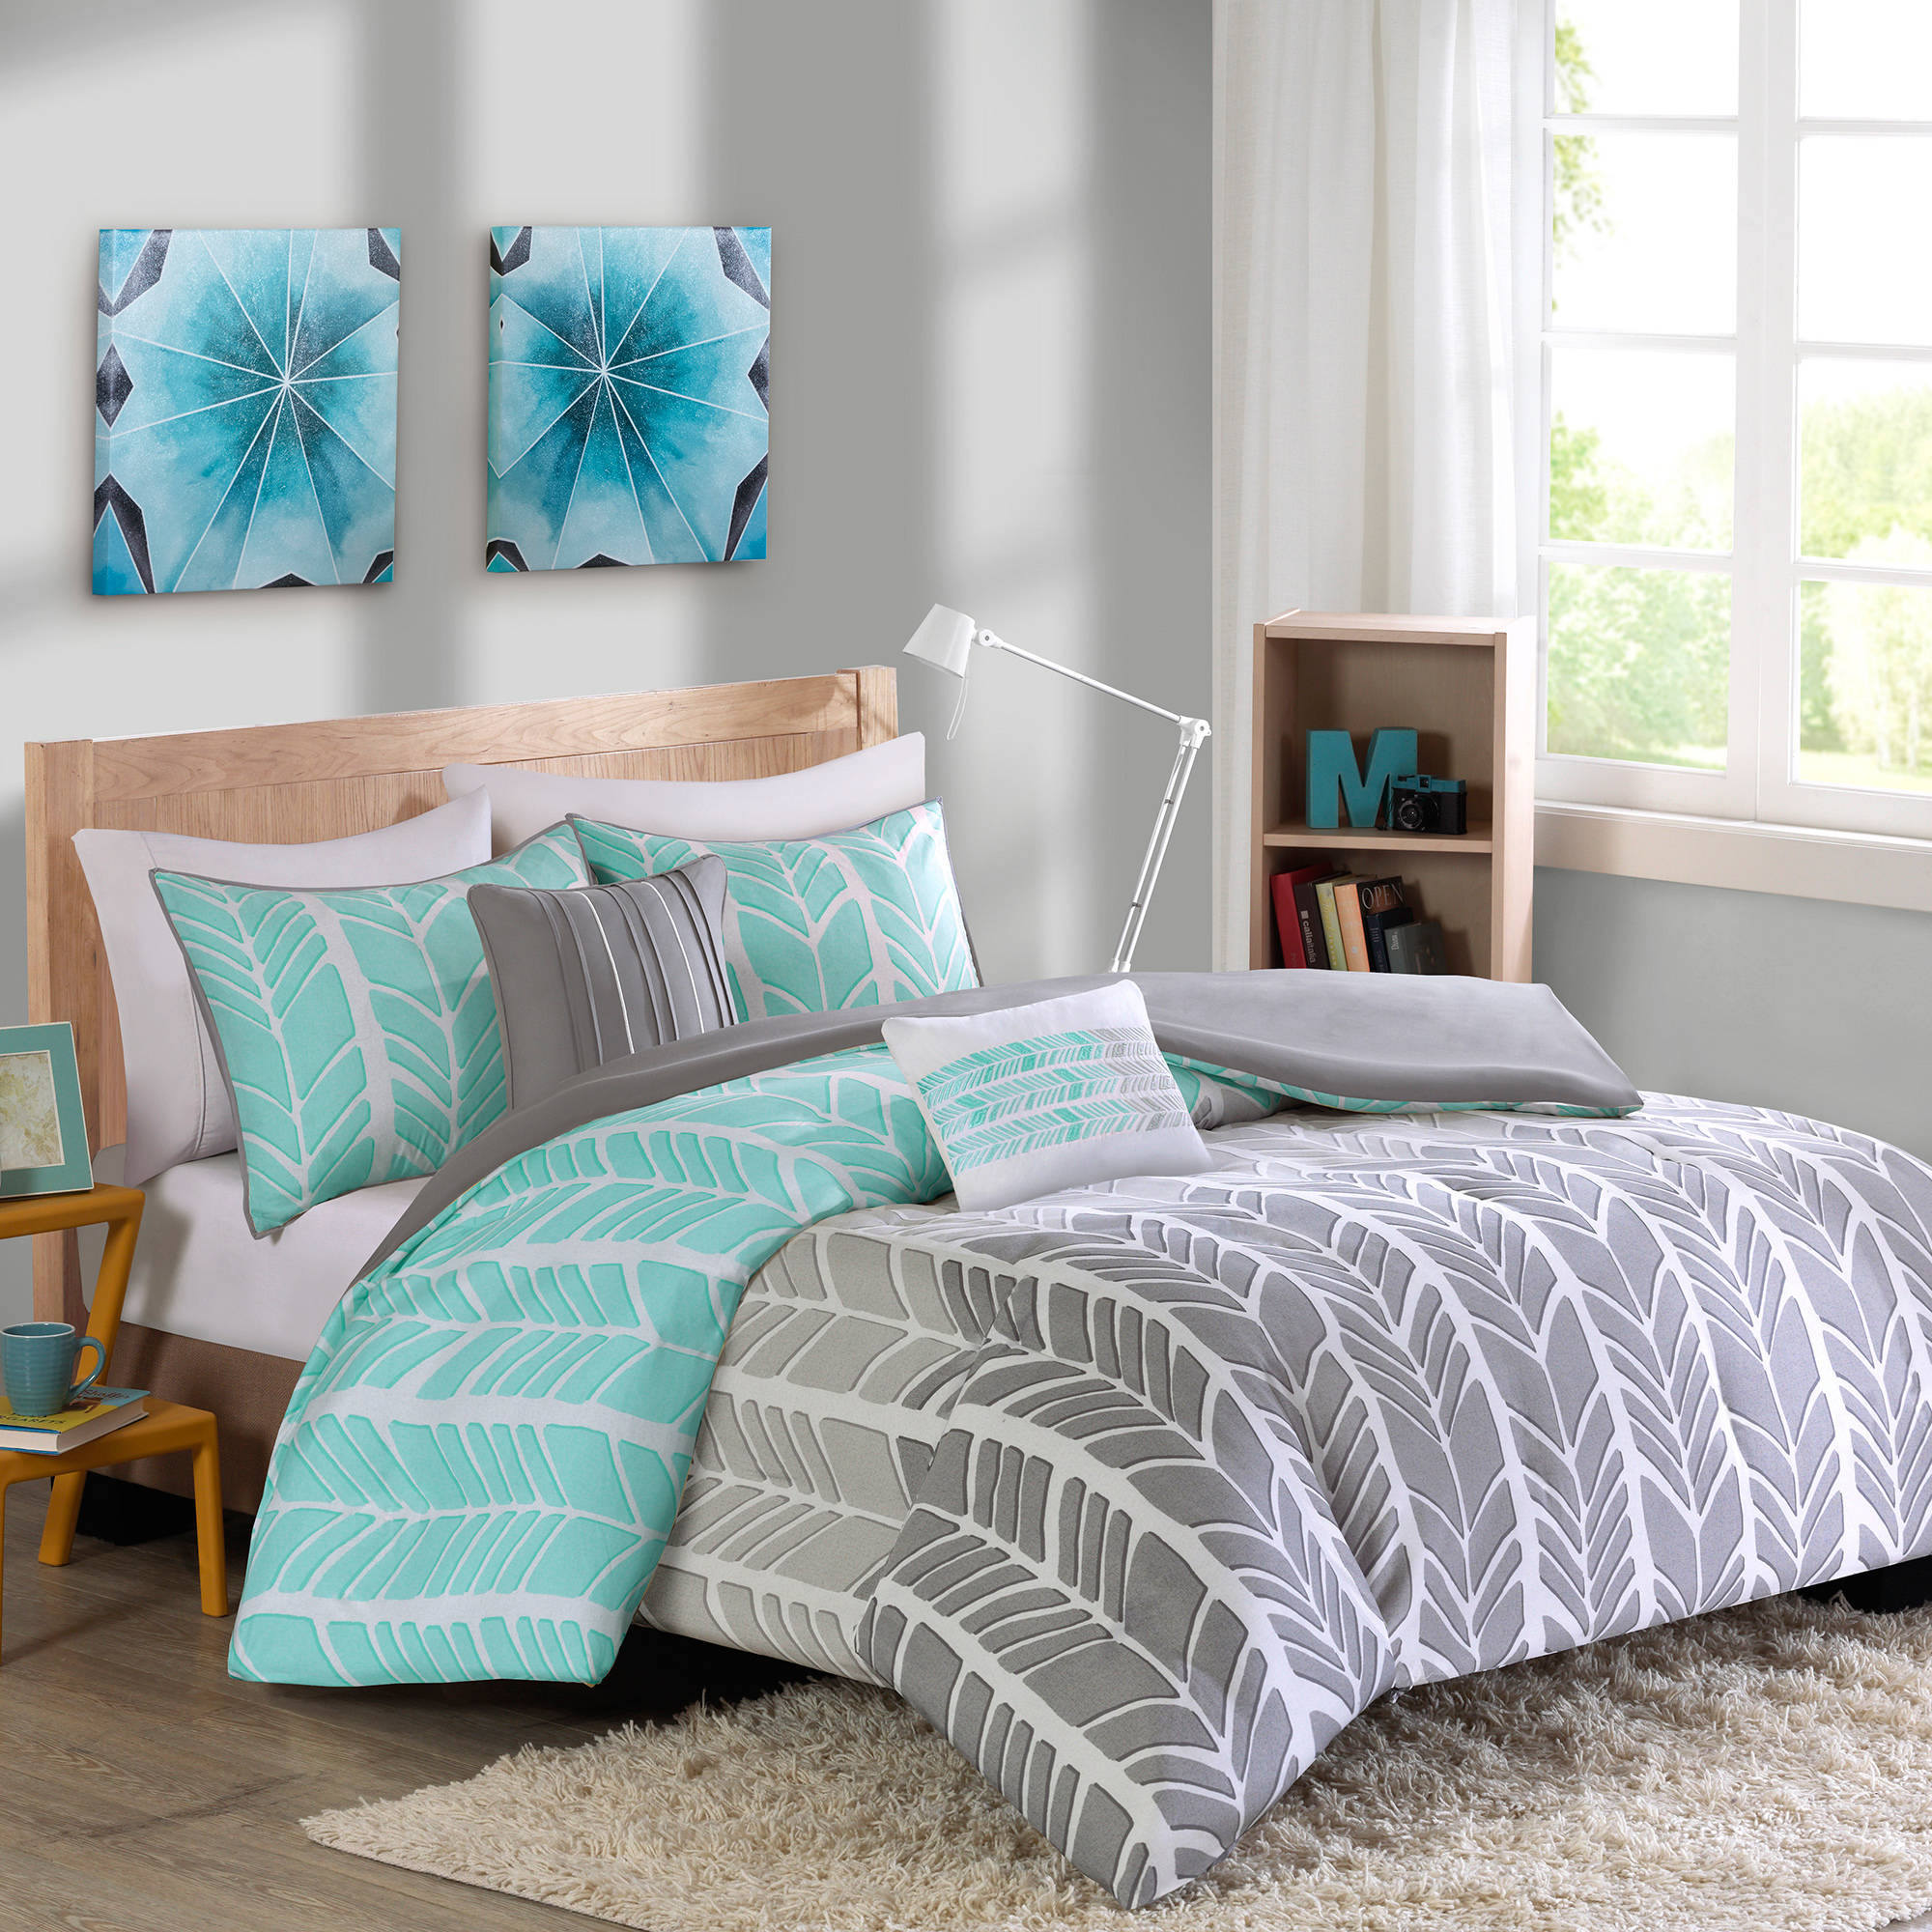 Home Essence Apartment Amanda Duvet Cover Set